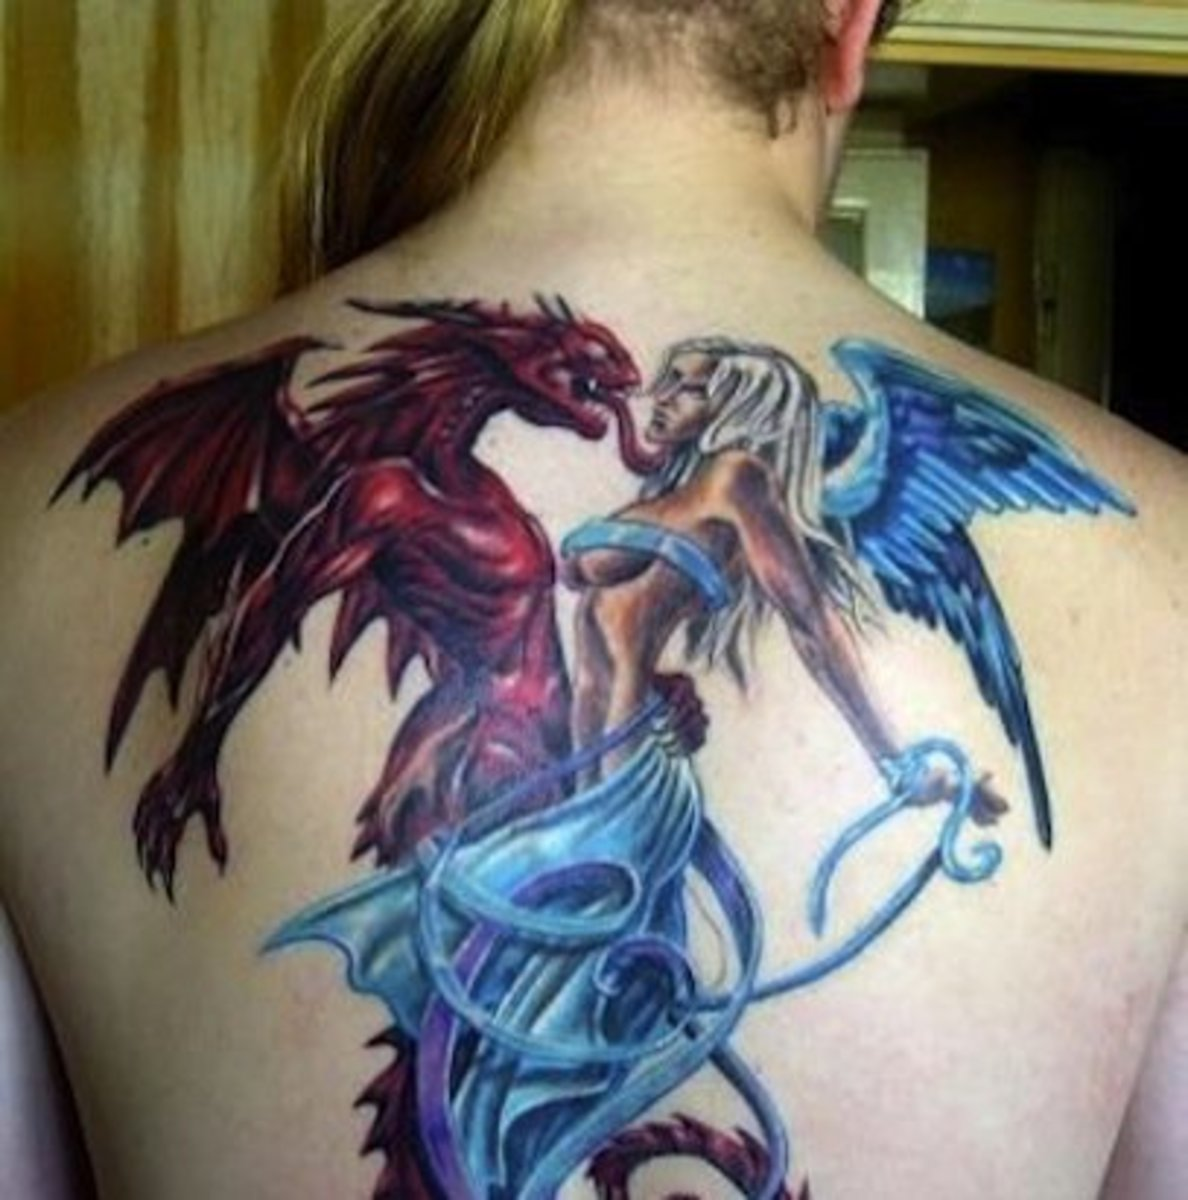 Tattoos of Angels and Demons - Tattoo Ideas, Artists and Models